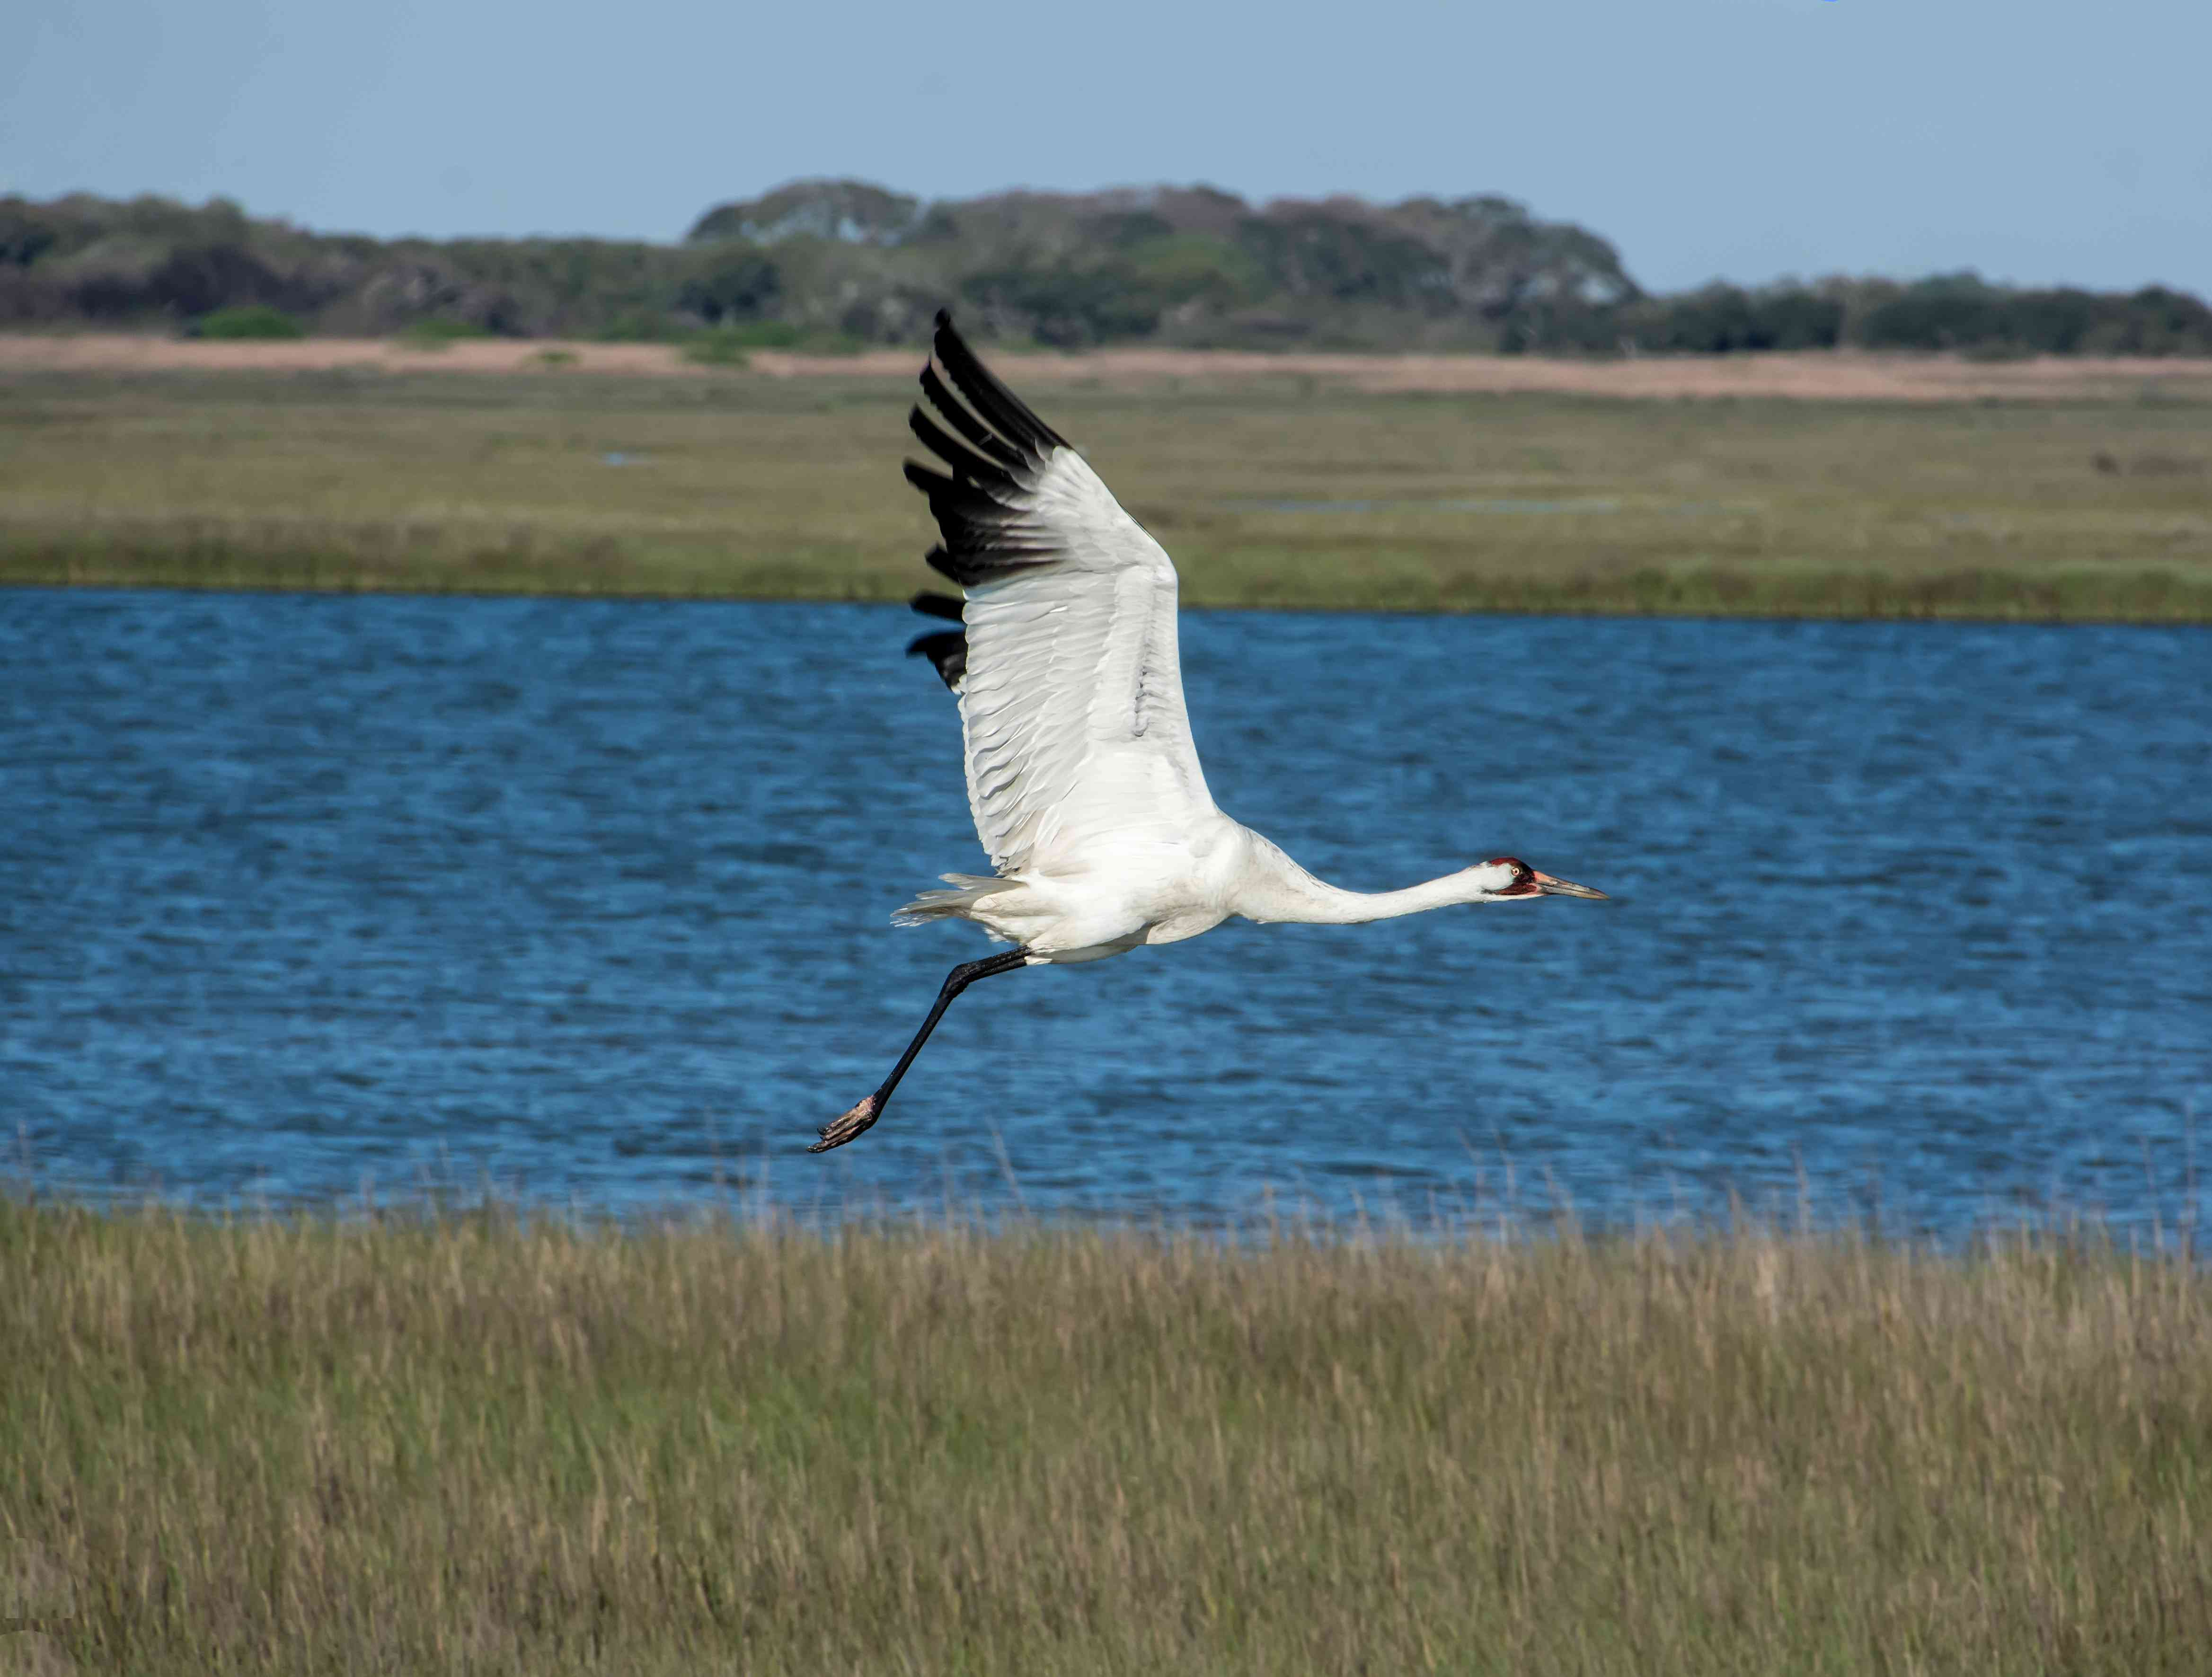 Whooping crane flying above the water.